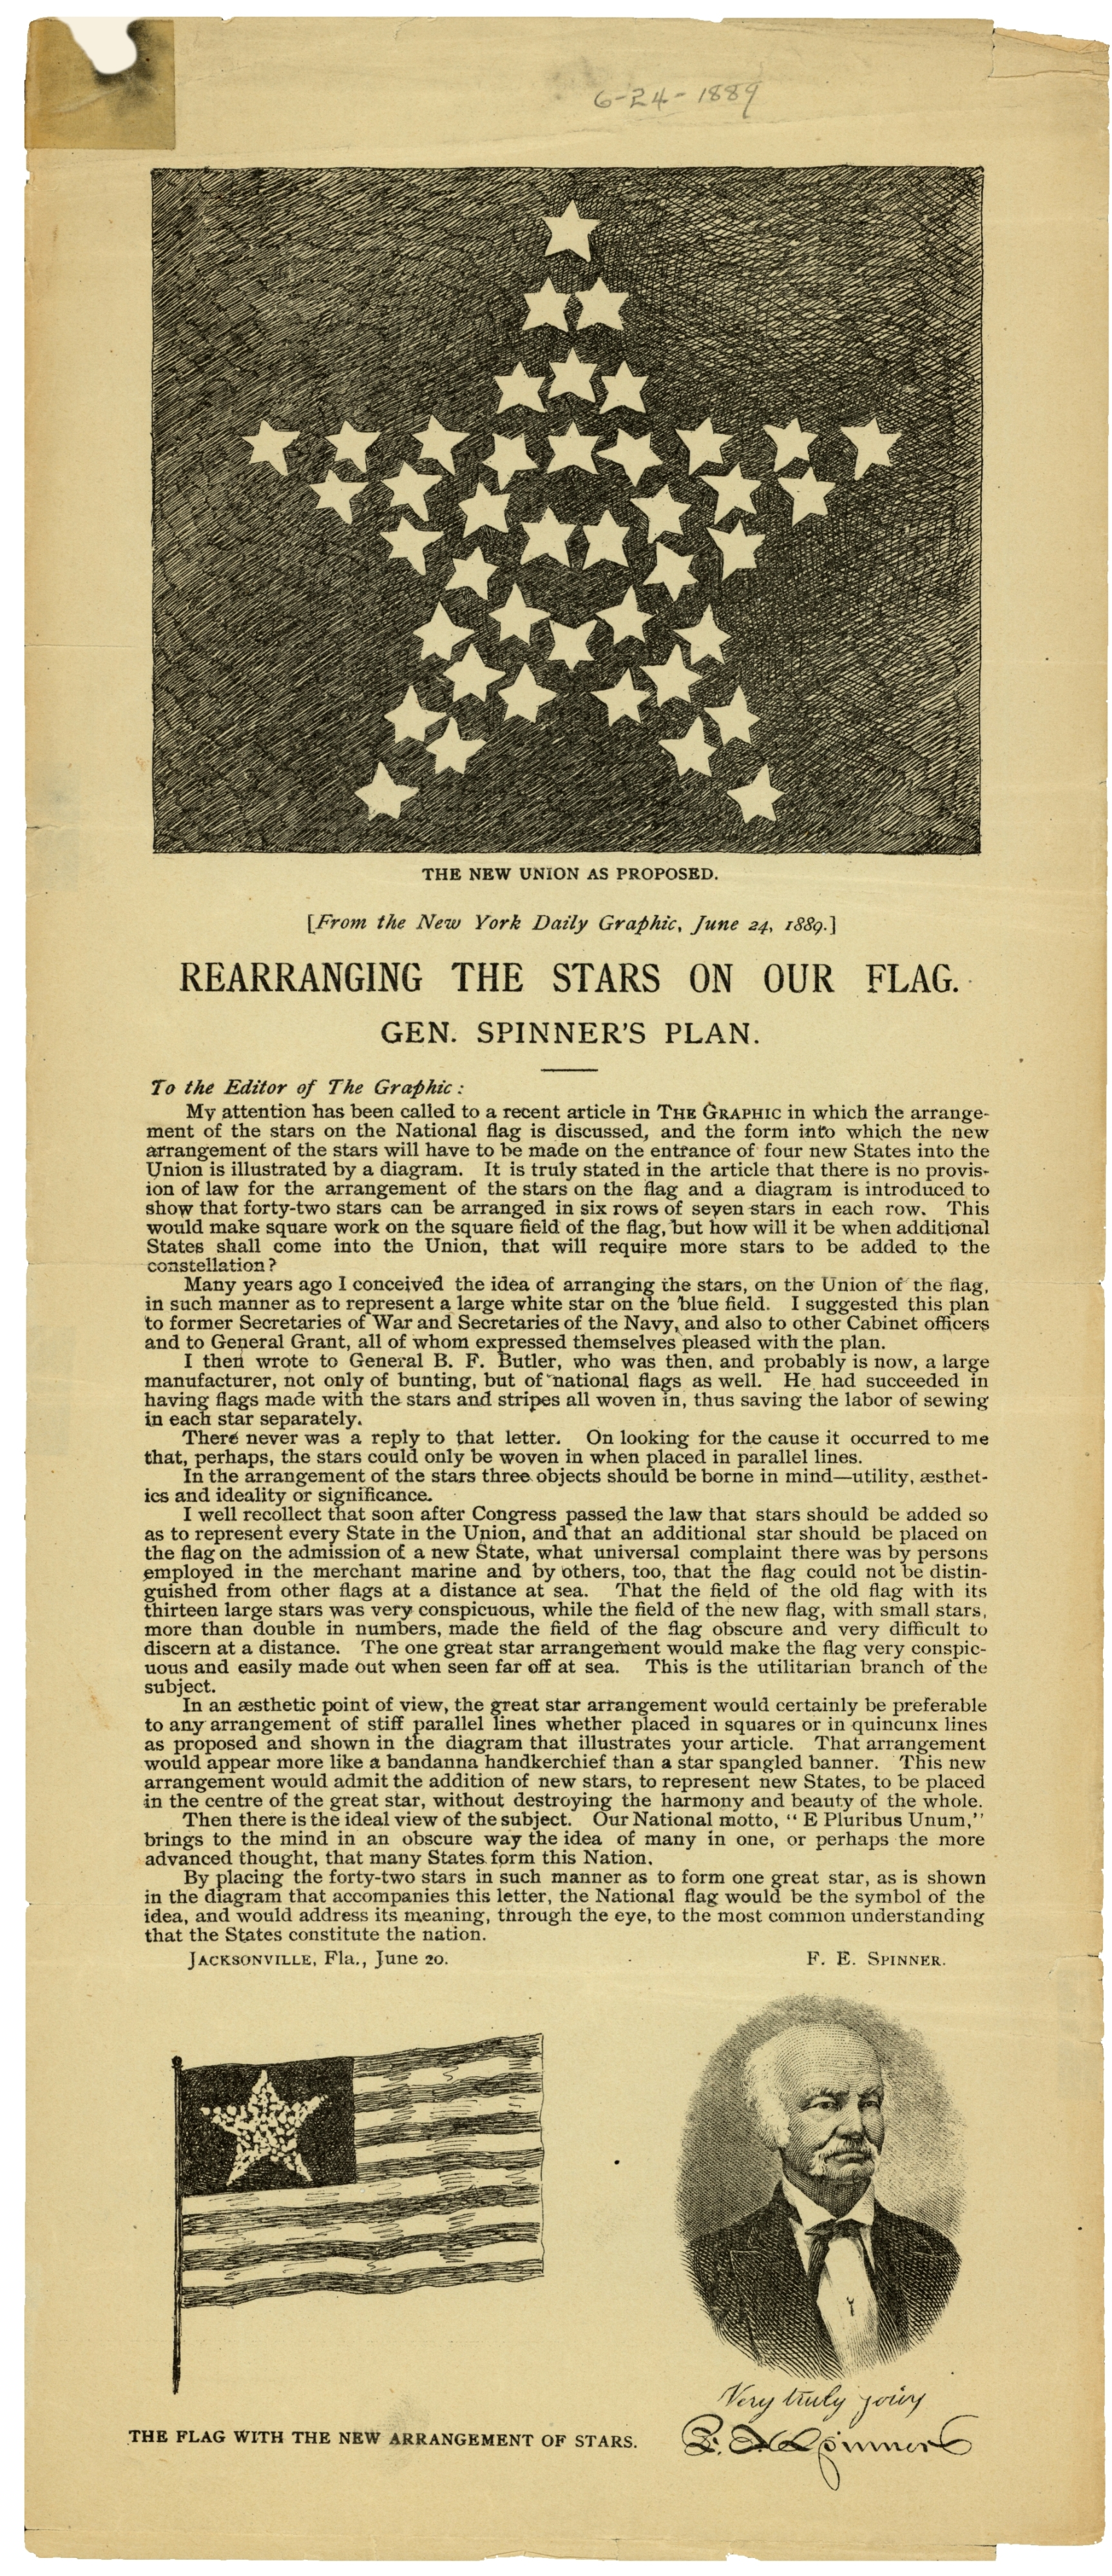 Rearranging the stars on our flag, Gen. Spinner&#039;s plan.